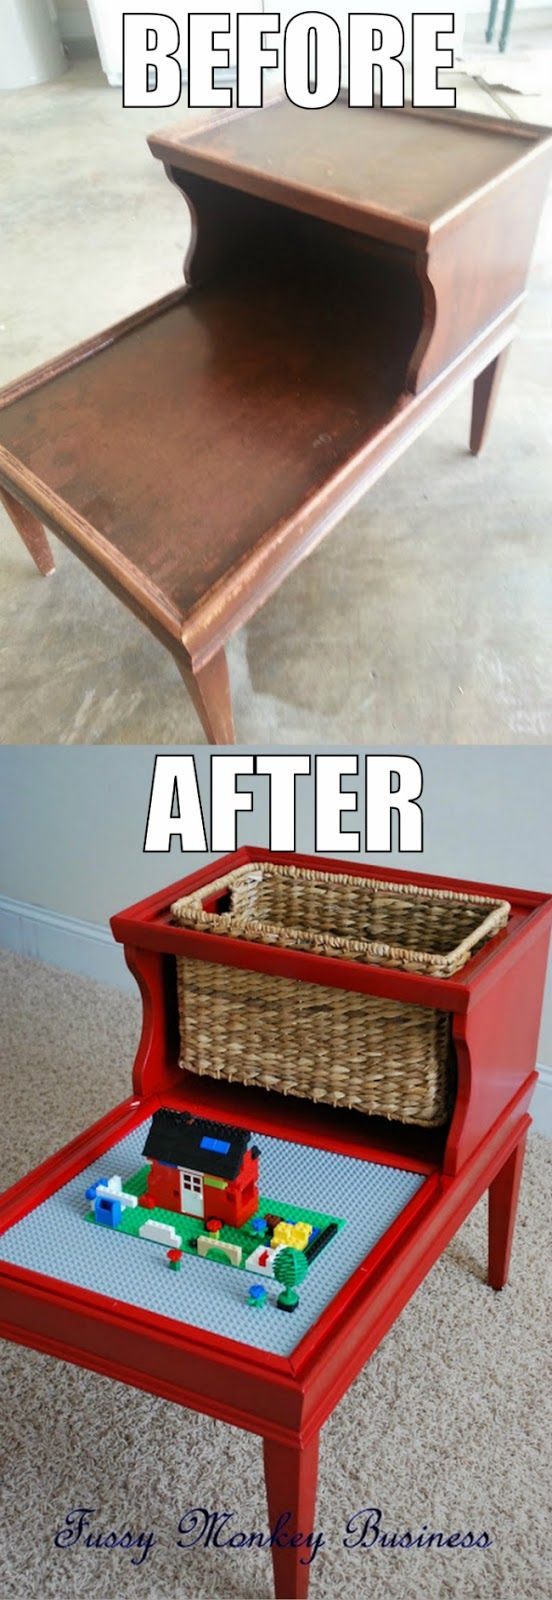 Genius idea for upcycling old furniture.